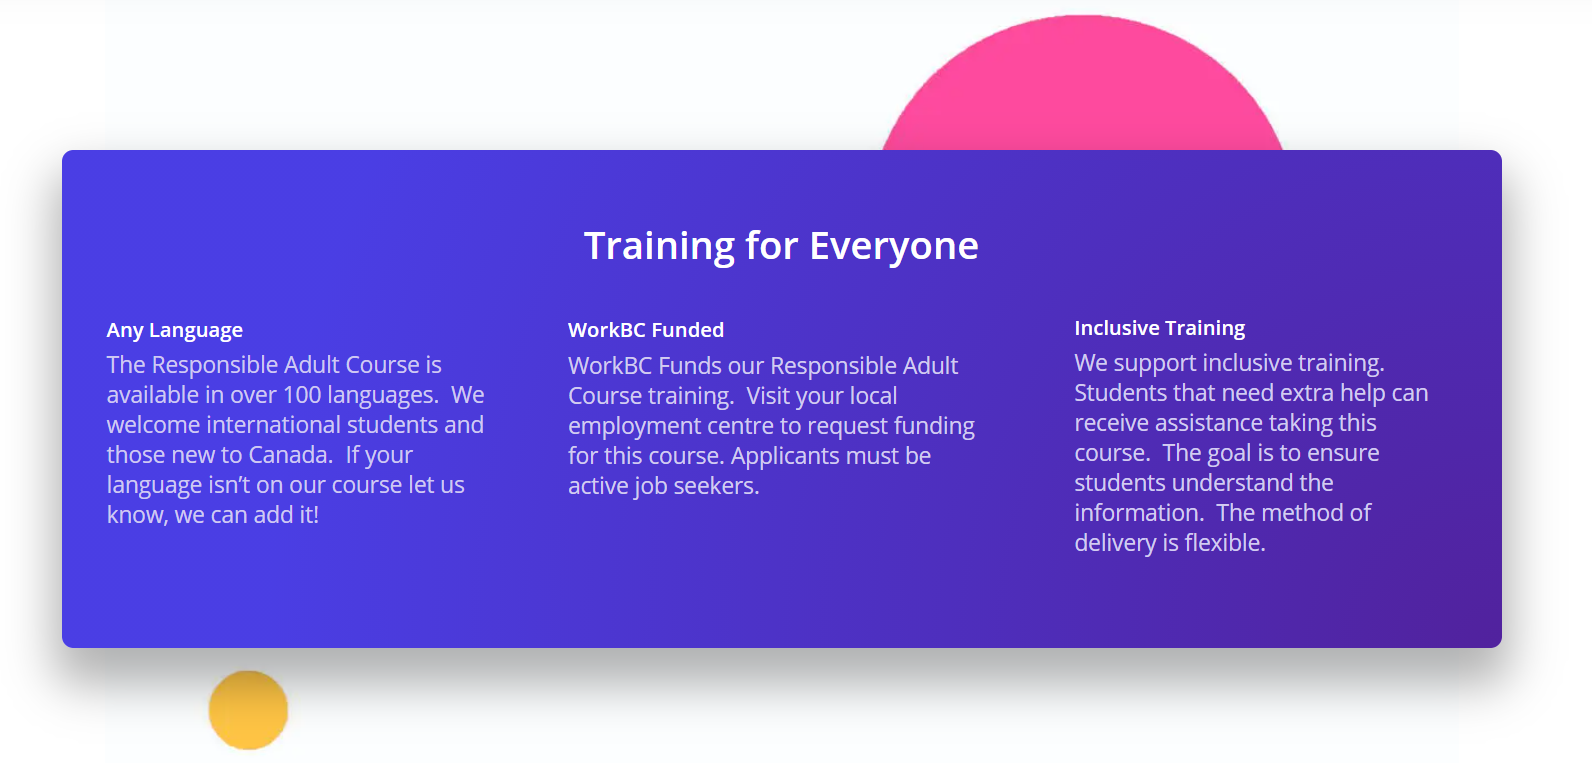 Inclusive Training | Responsible Adult Course